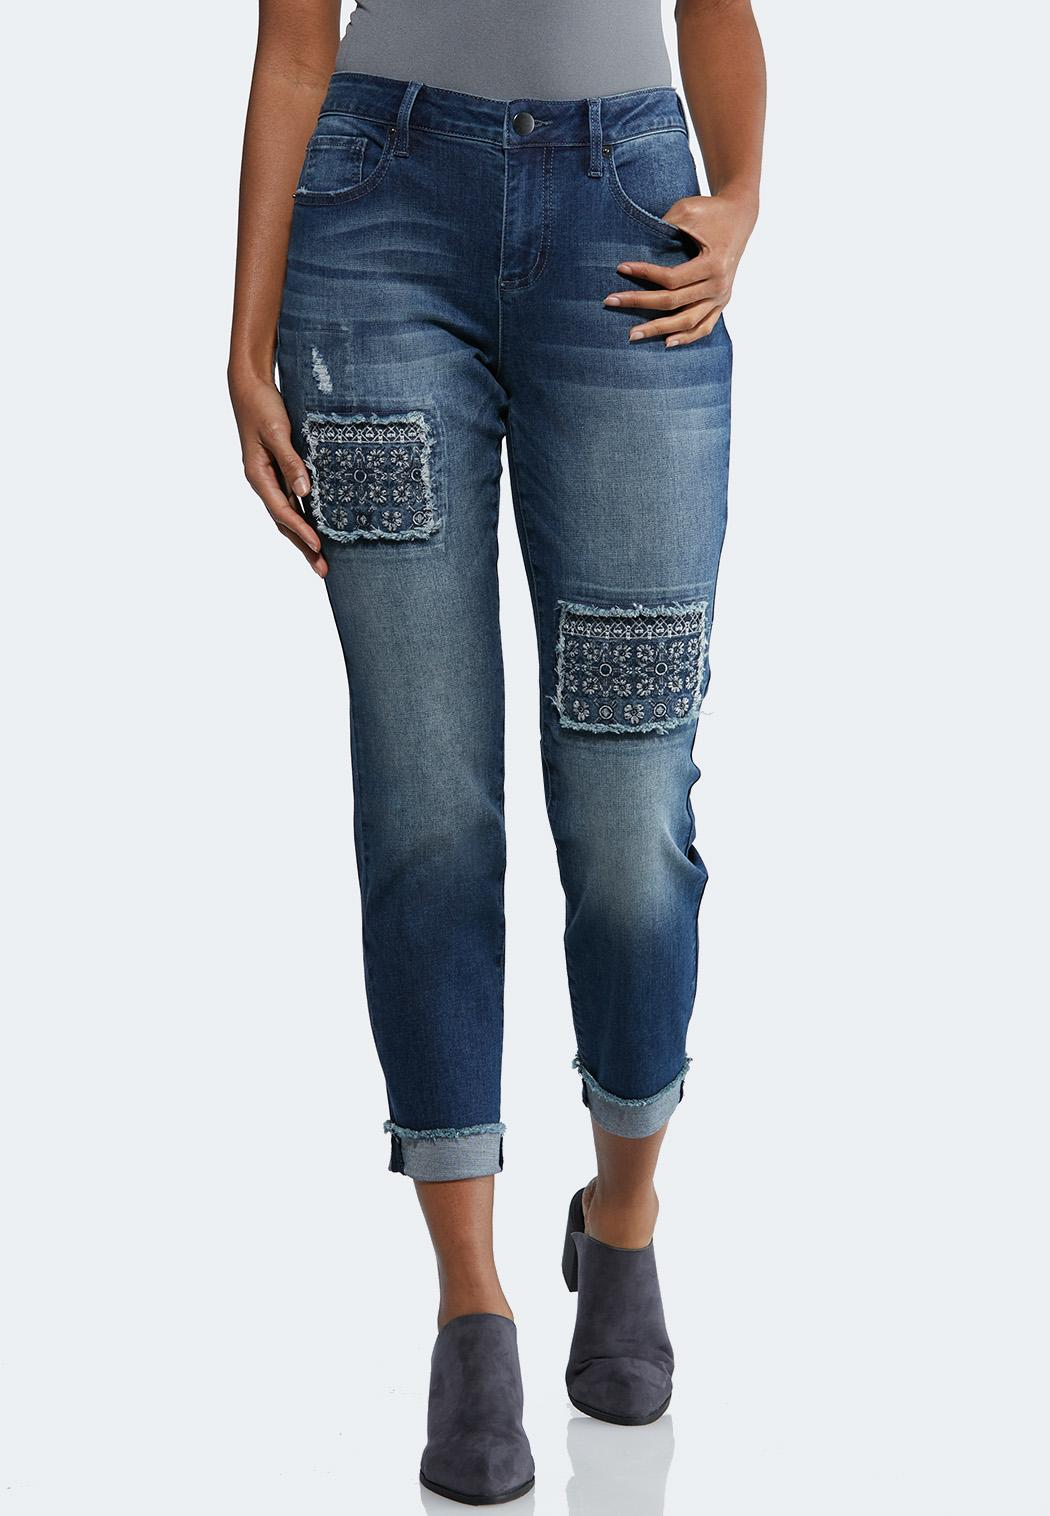 ad4a4f55a9 Distressed Patchwork Ankle Jeans alternate view Distressed Patchwork Ankle  Jeans